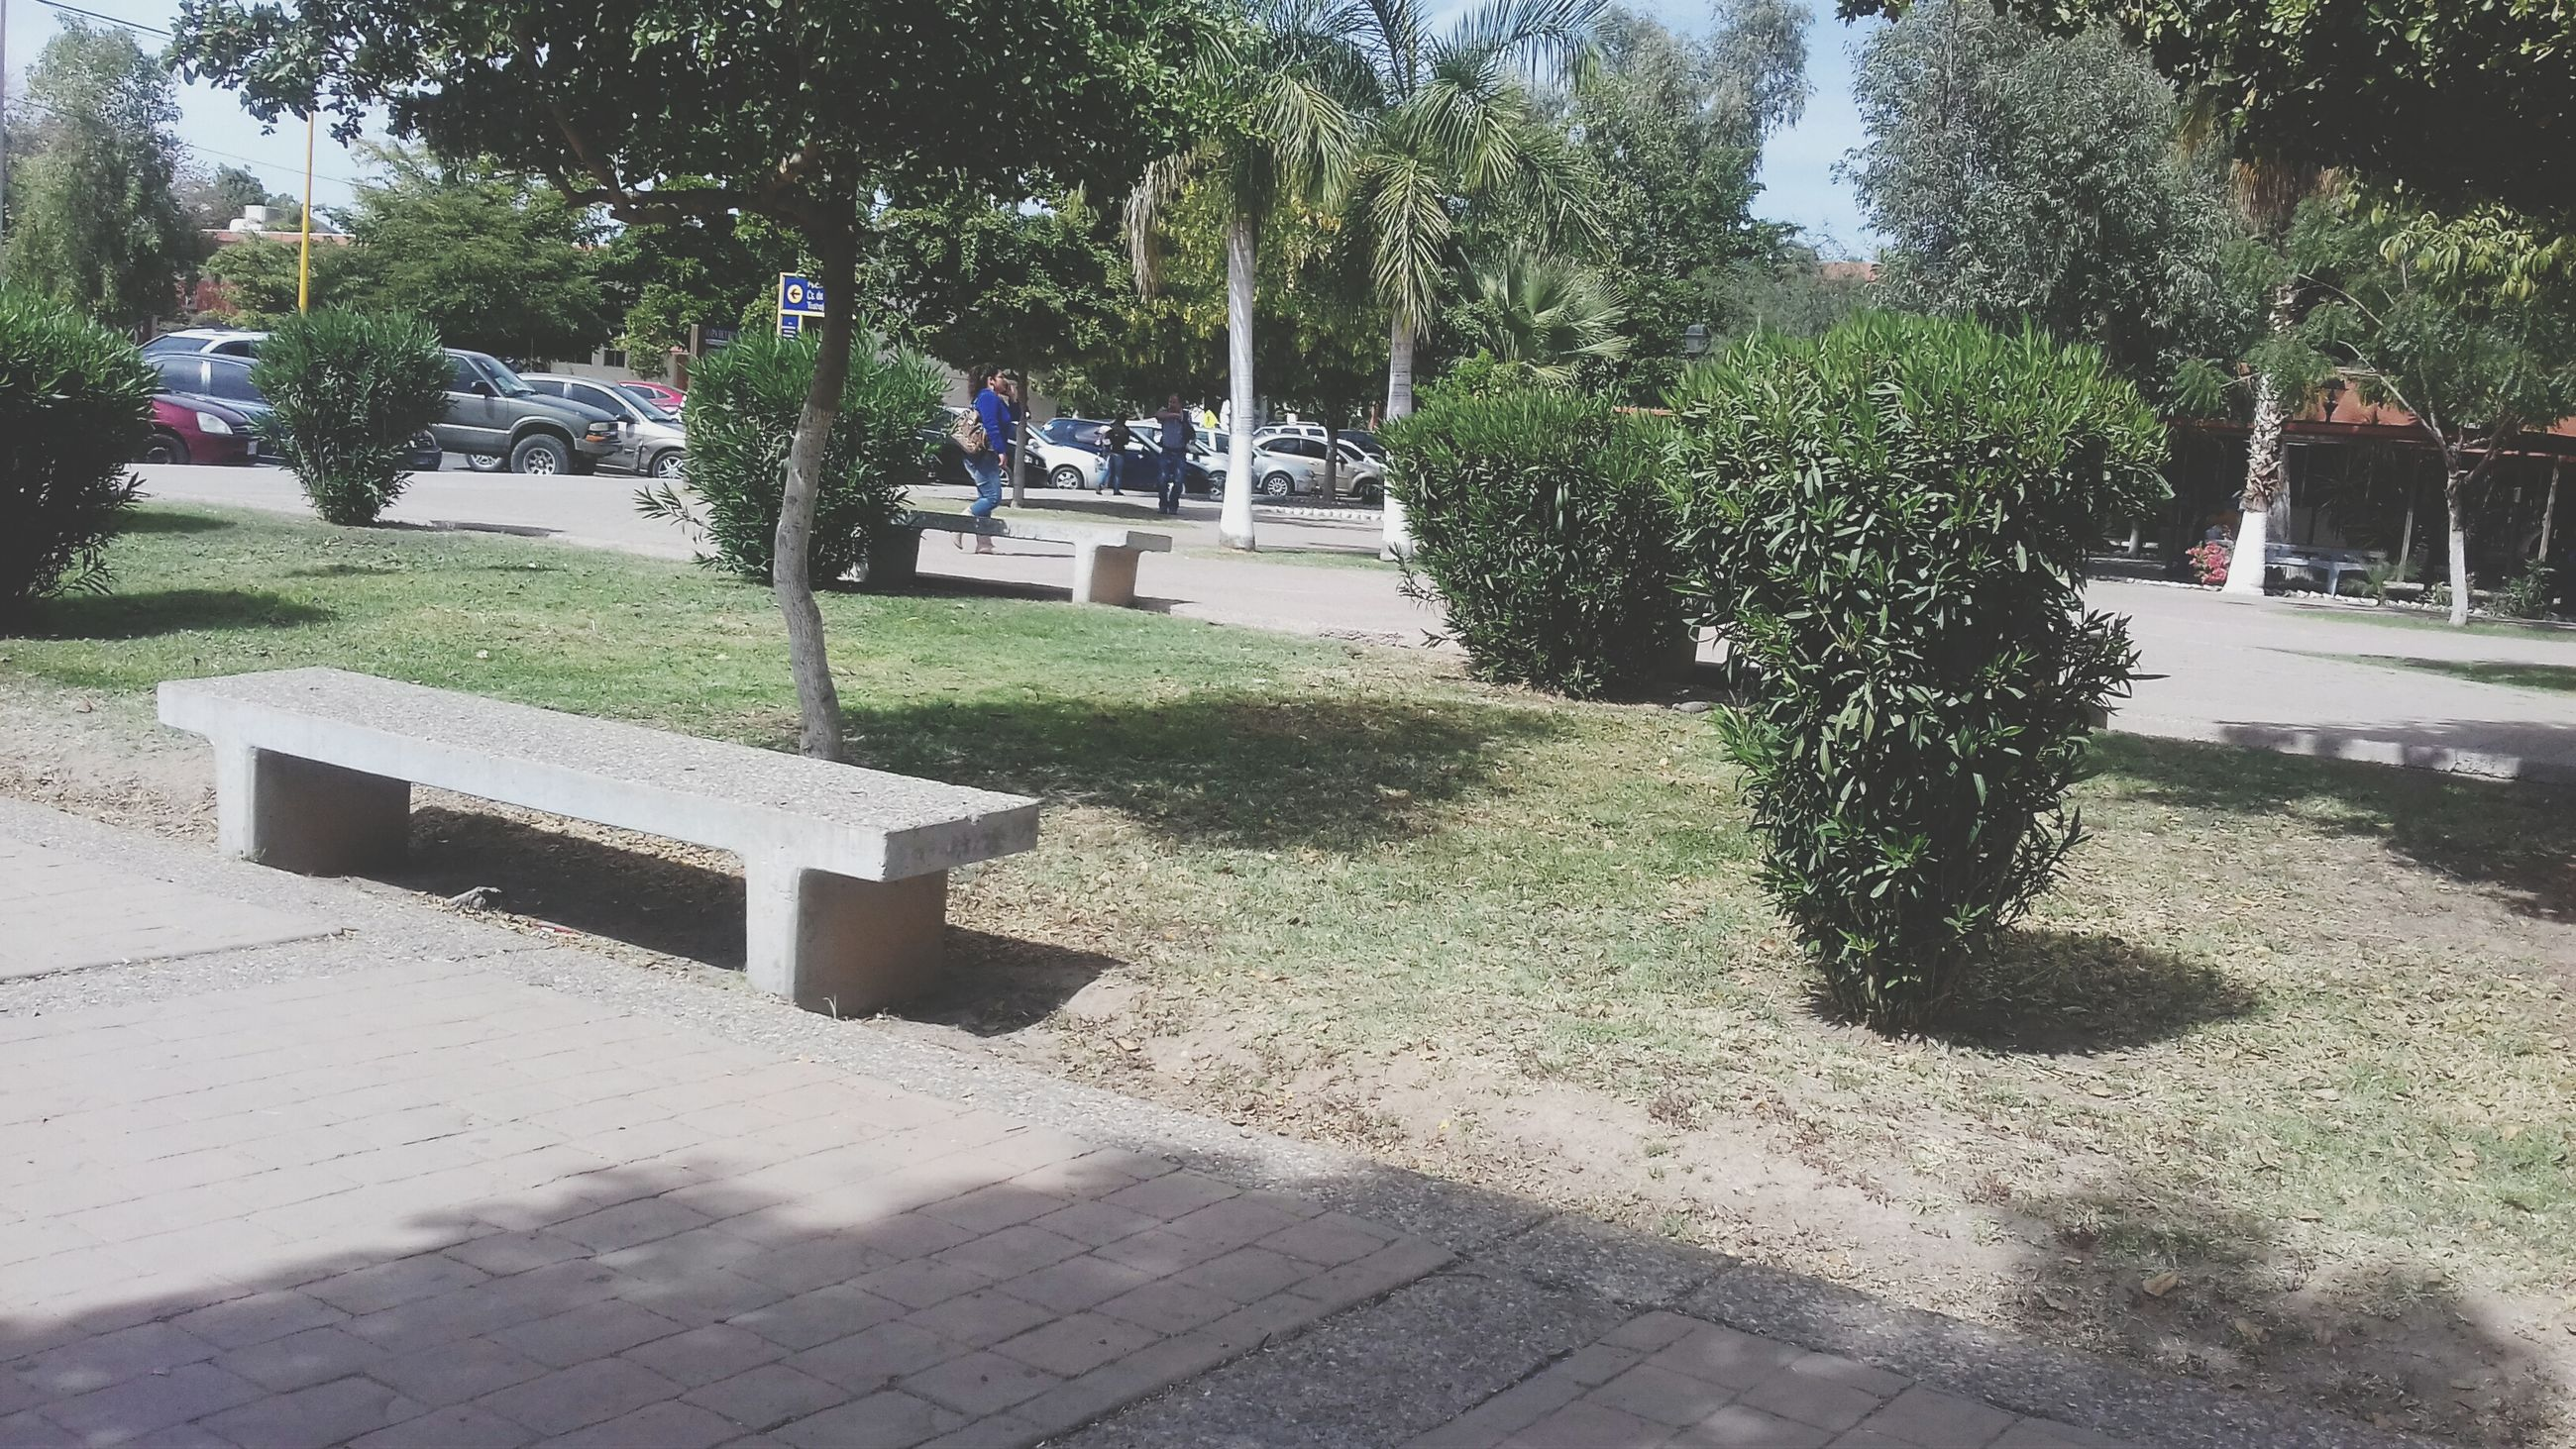 tree, building exterior, growth, park - man made space, shadow, sunlight, built structure, architecture, footpath, tree trunk, empty, bench, street, plant, day, incidental people, outdoors, nature, green color, lawn